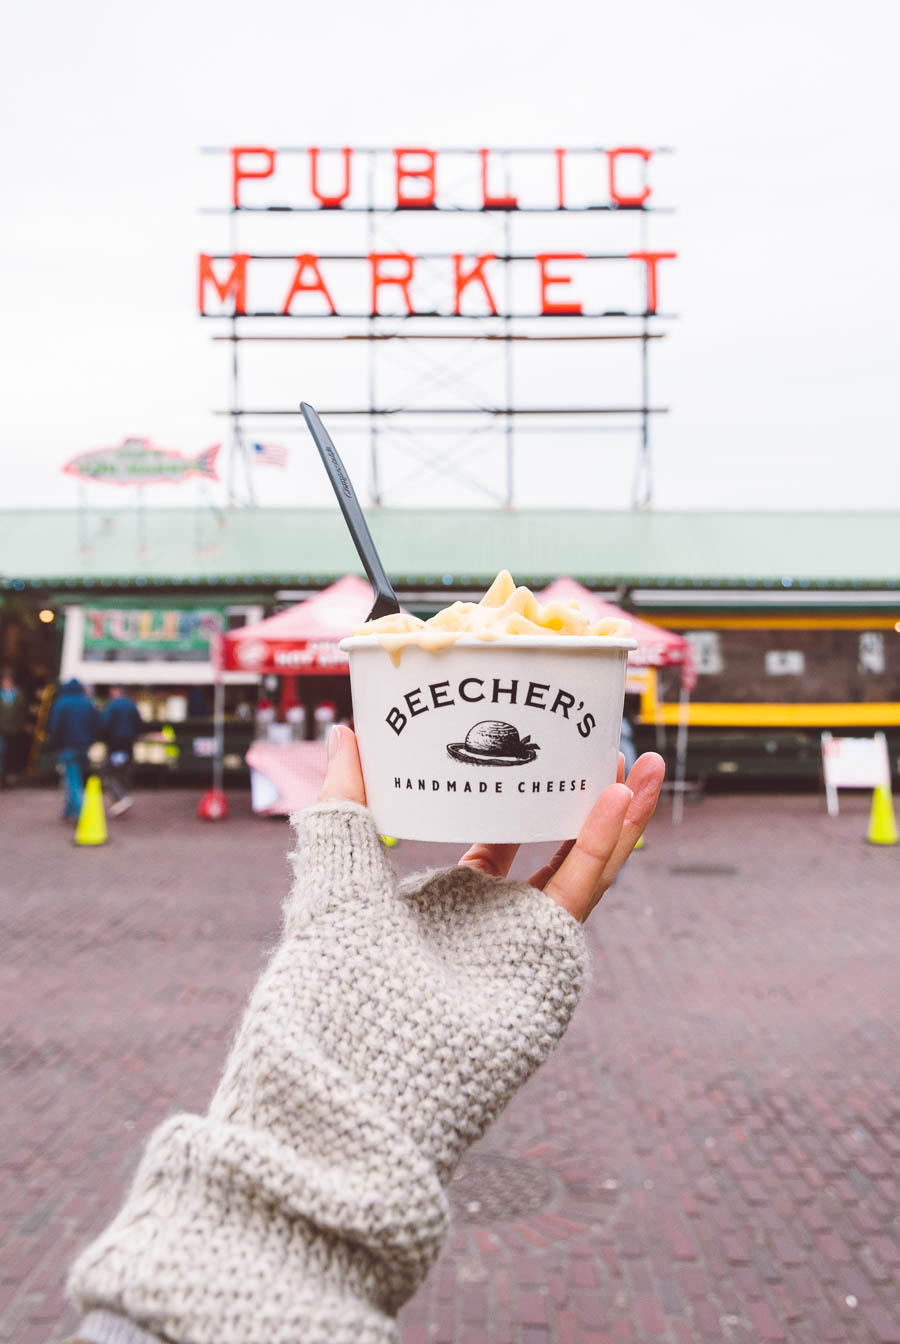 A hand holding a white cup of Beecher's Mac and Cheese in front of the Pike Market sign in Seattle